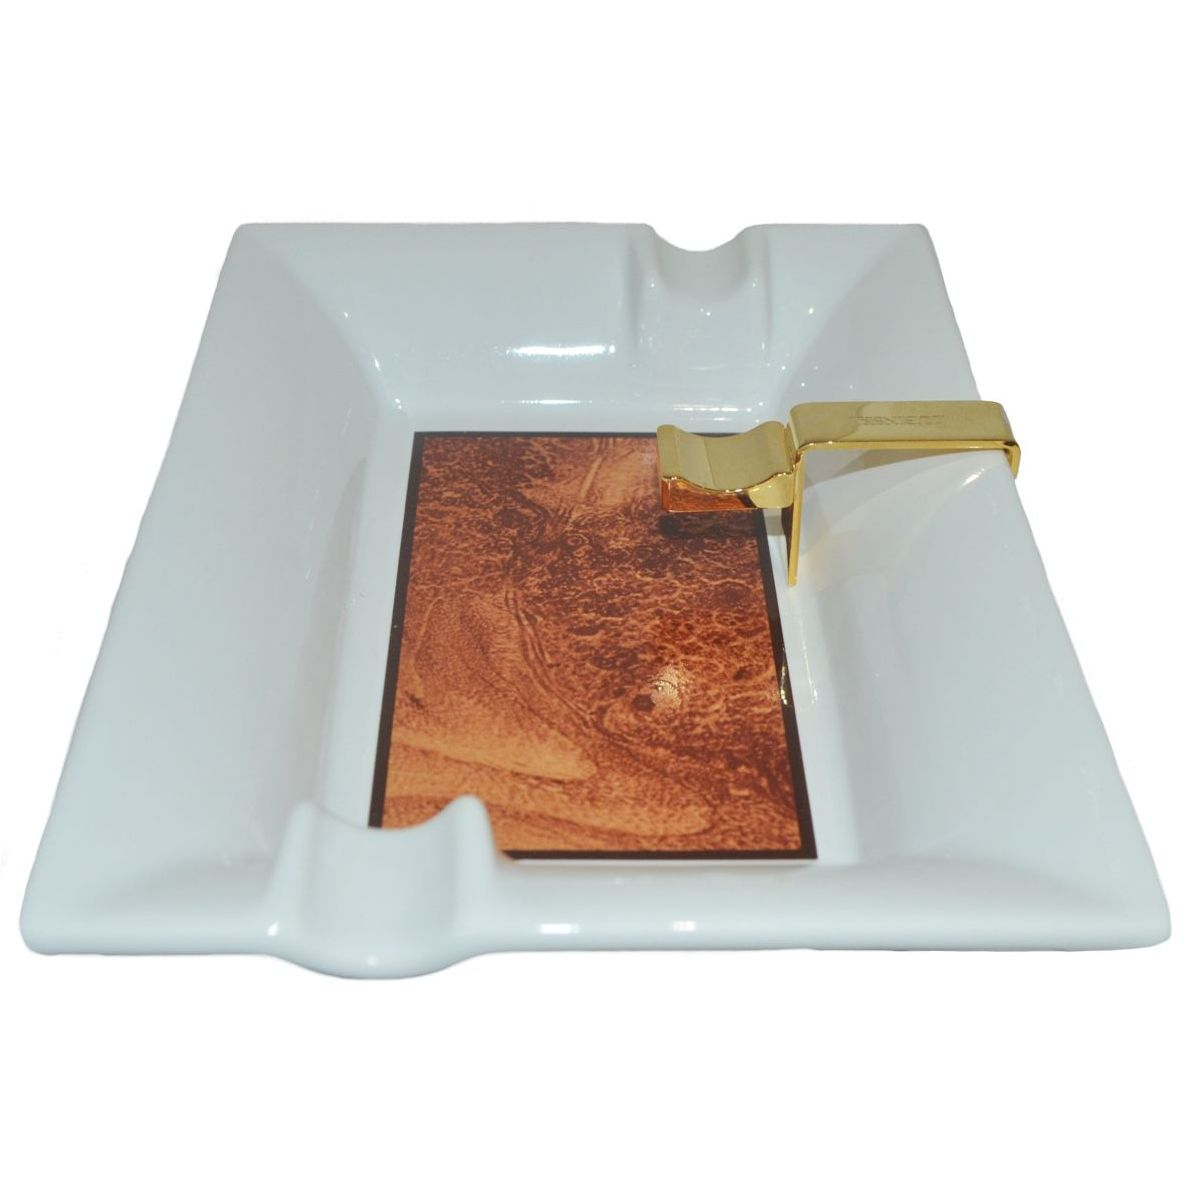 Cigar Ashtray Large Ceramic Burl Two Position With Metal Stand Boxed 1